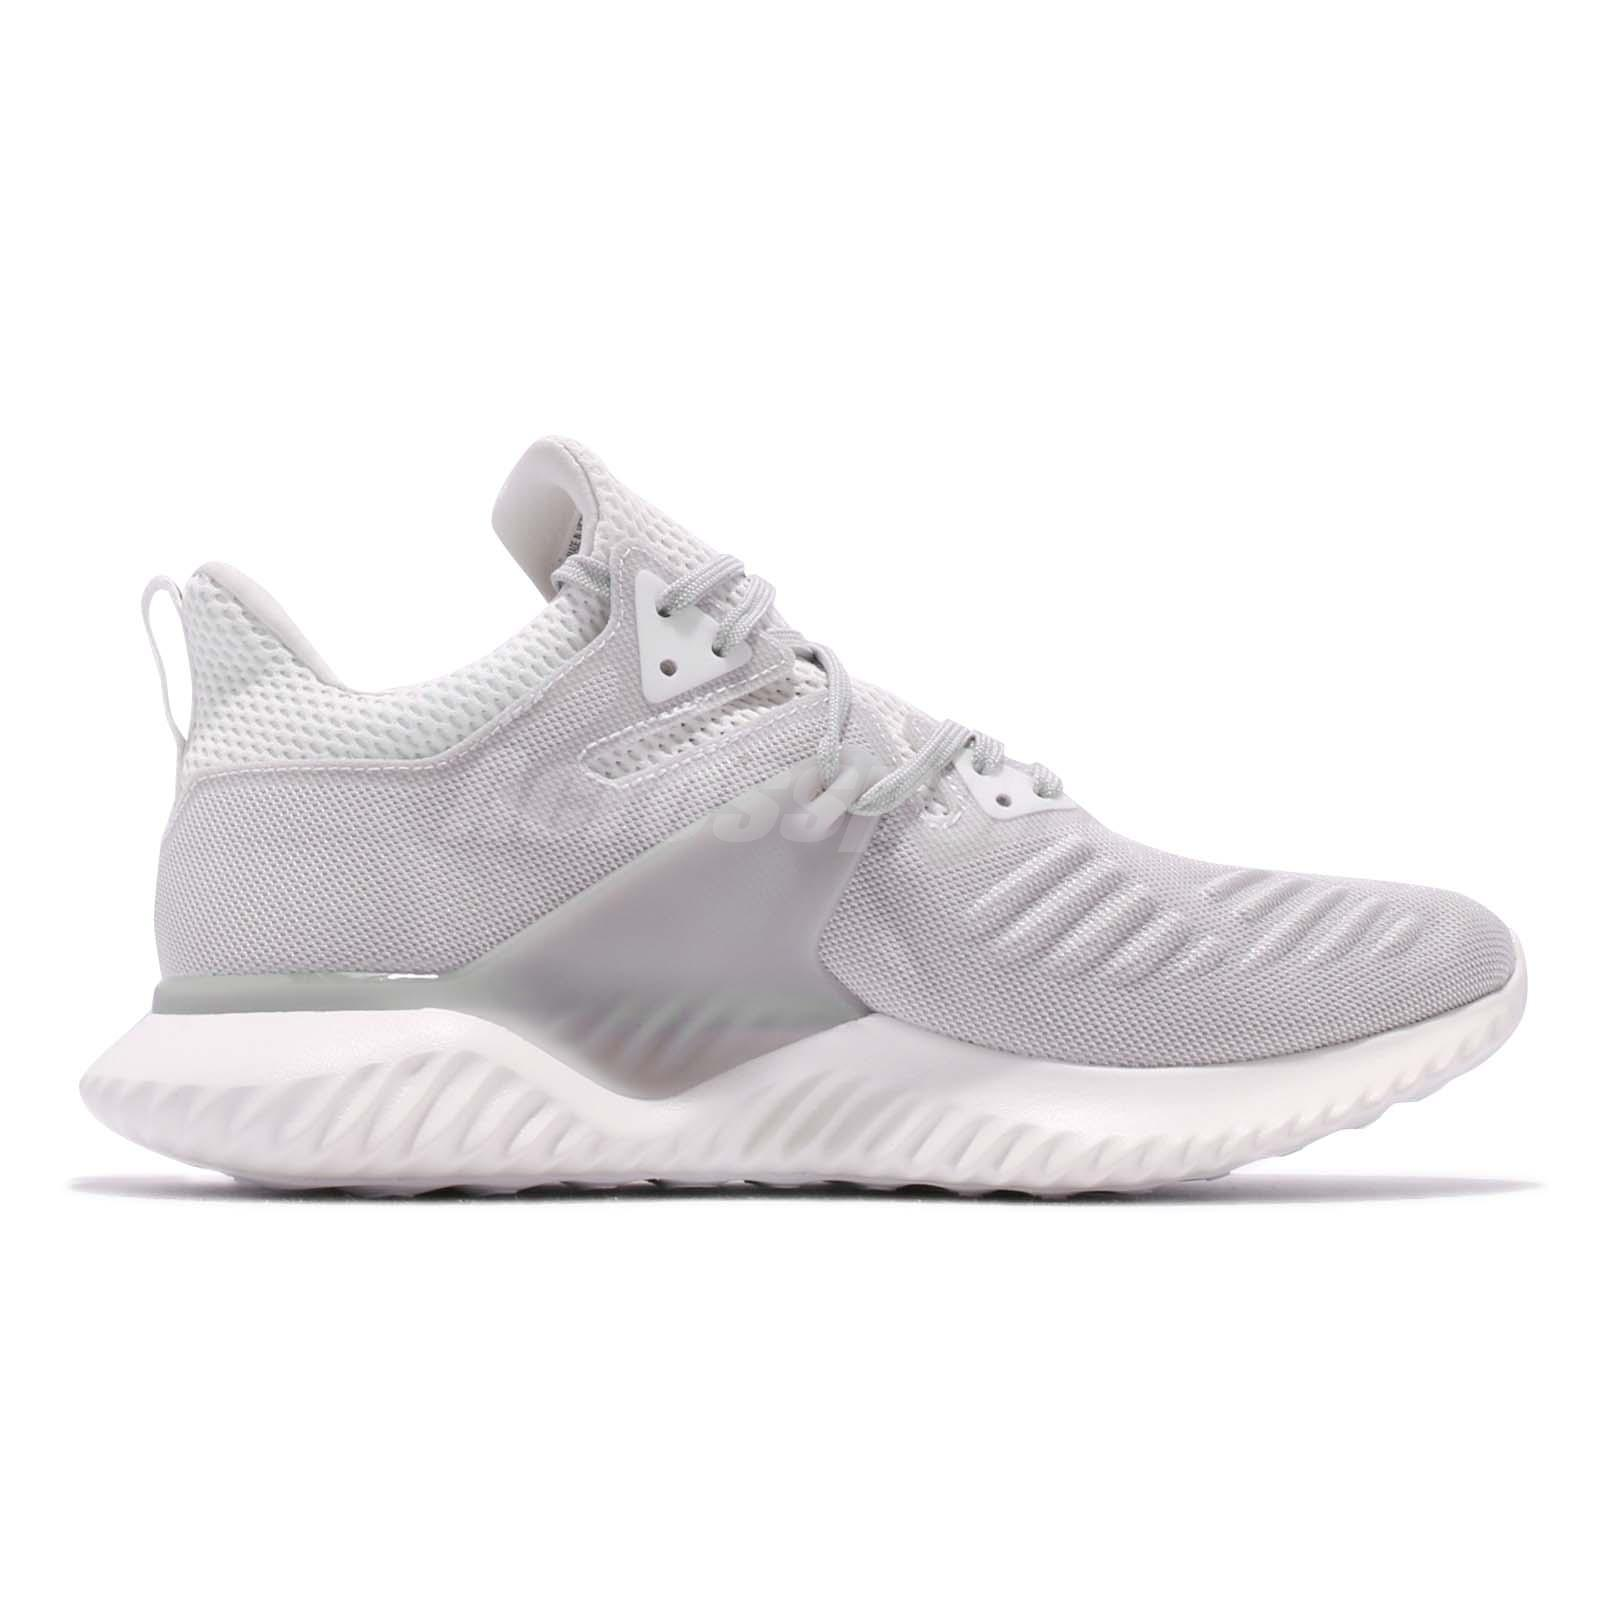 f40bf9e2c13f6 adidas AlphaBOUNCE Beyond 2 M White Grey Men Running Shoes Sneakers ...